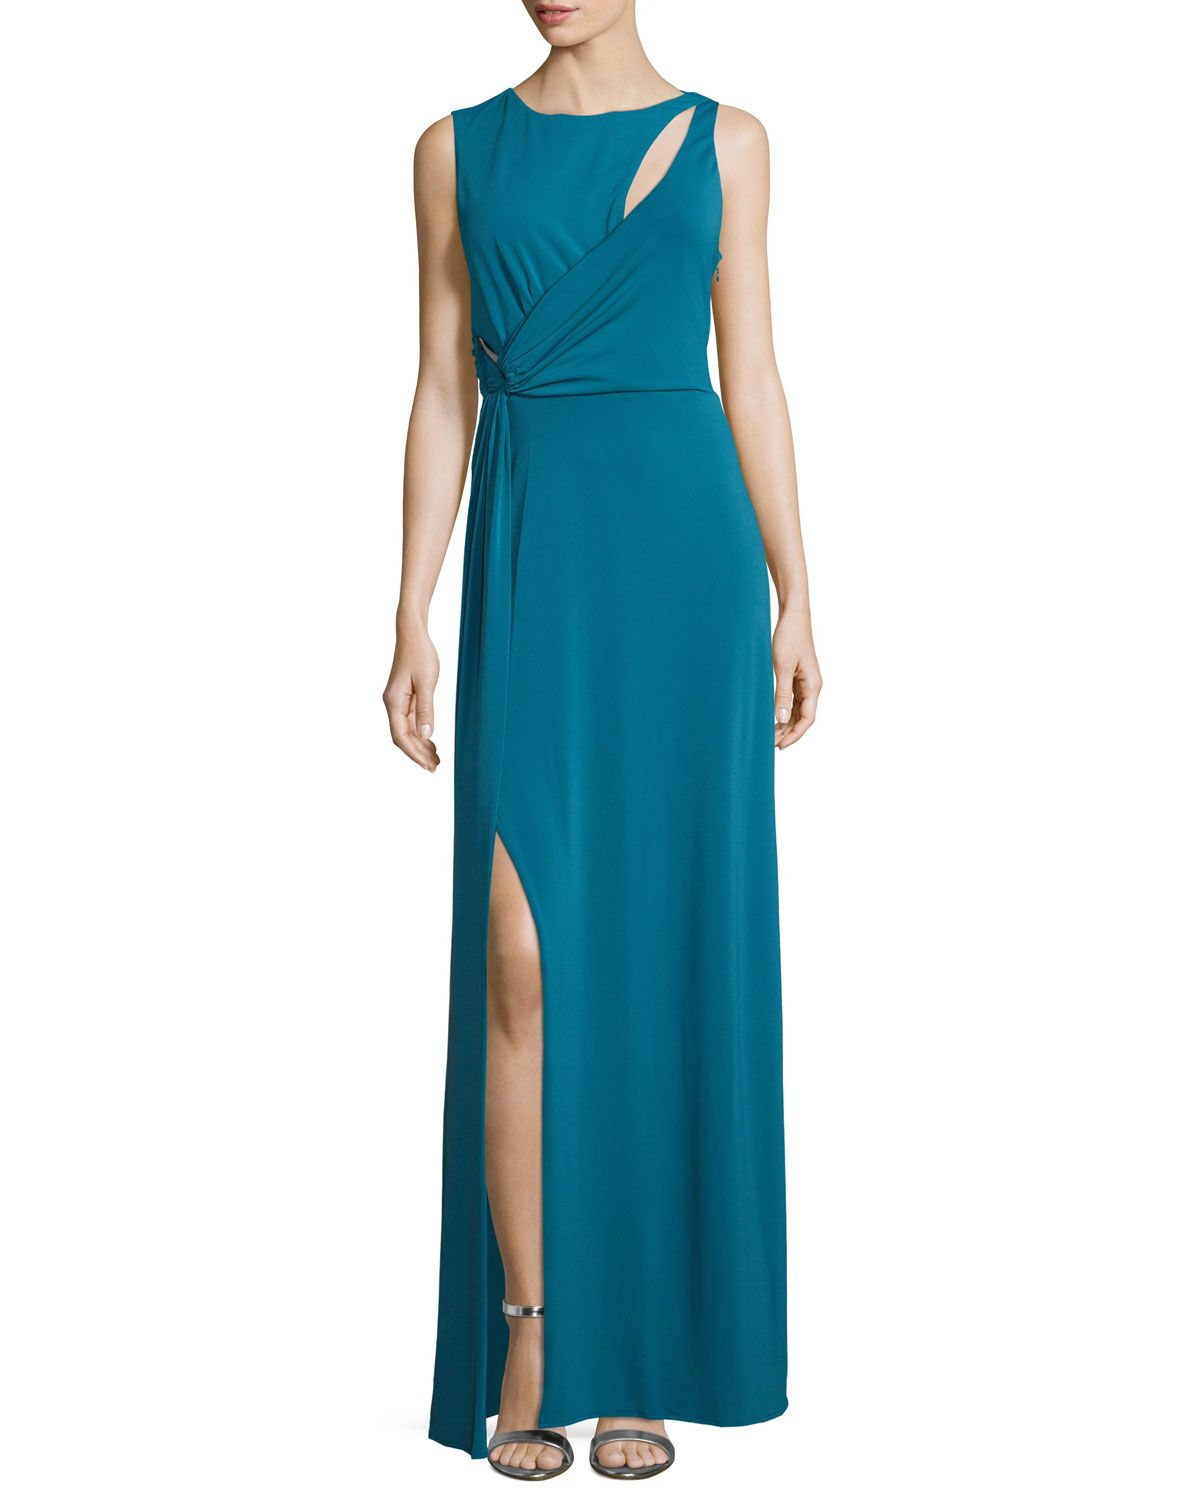 Sleeveless slash detail column gown atlantic halston heritage shop sleeveless slash detail column gown atlantic from halston heritage at neiman marcus last call where youll save as much as on designer fashions ombrellifo Image collections